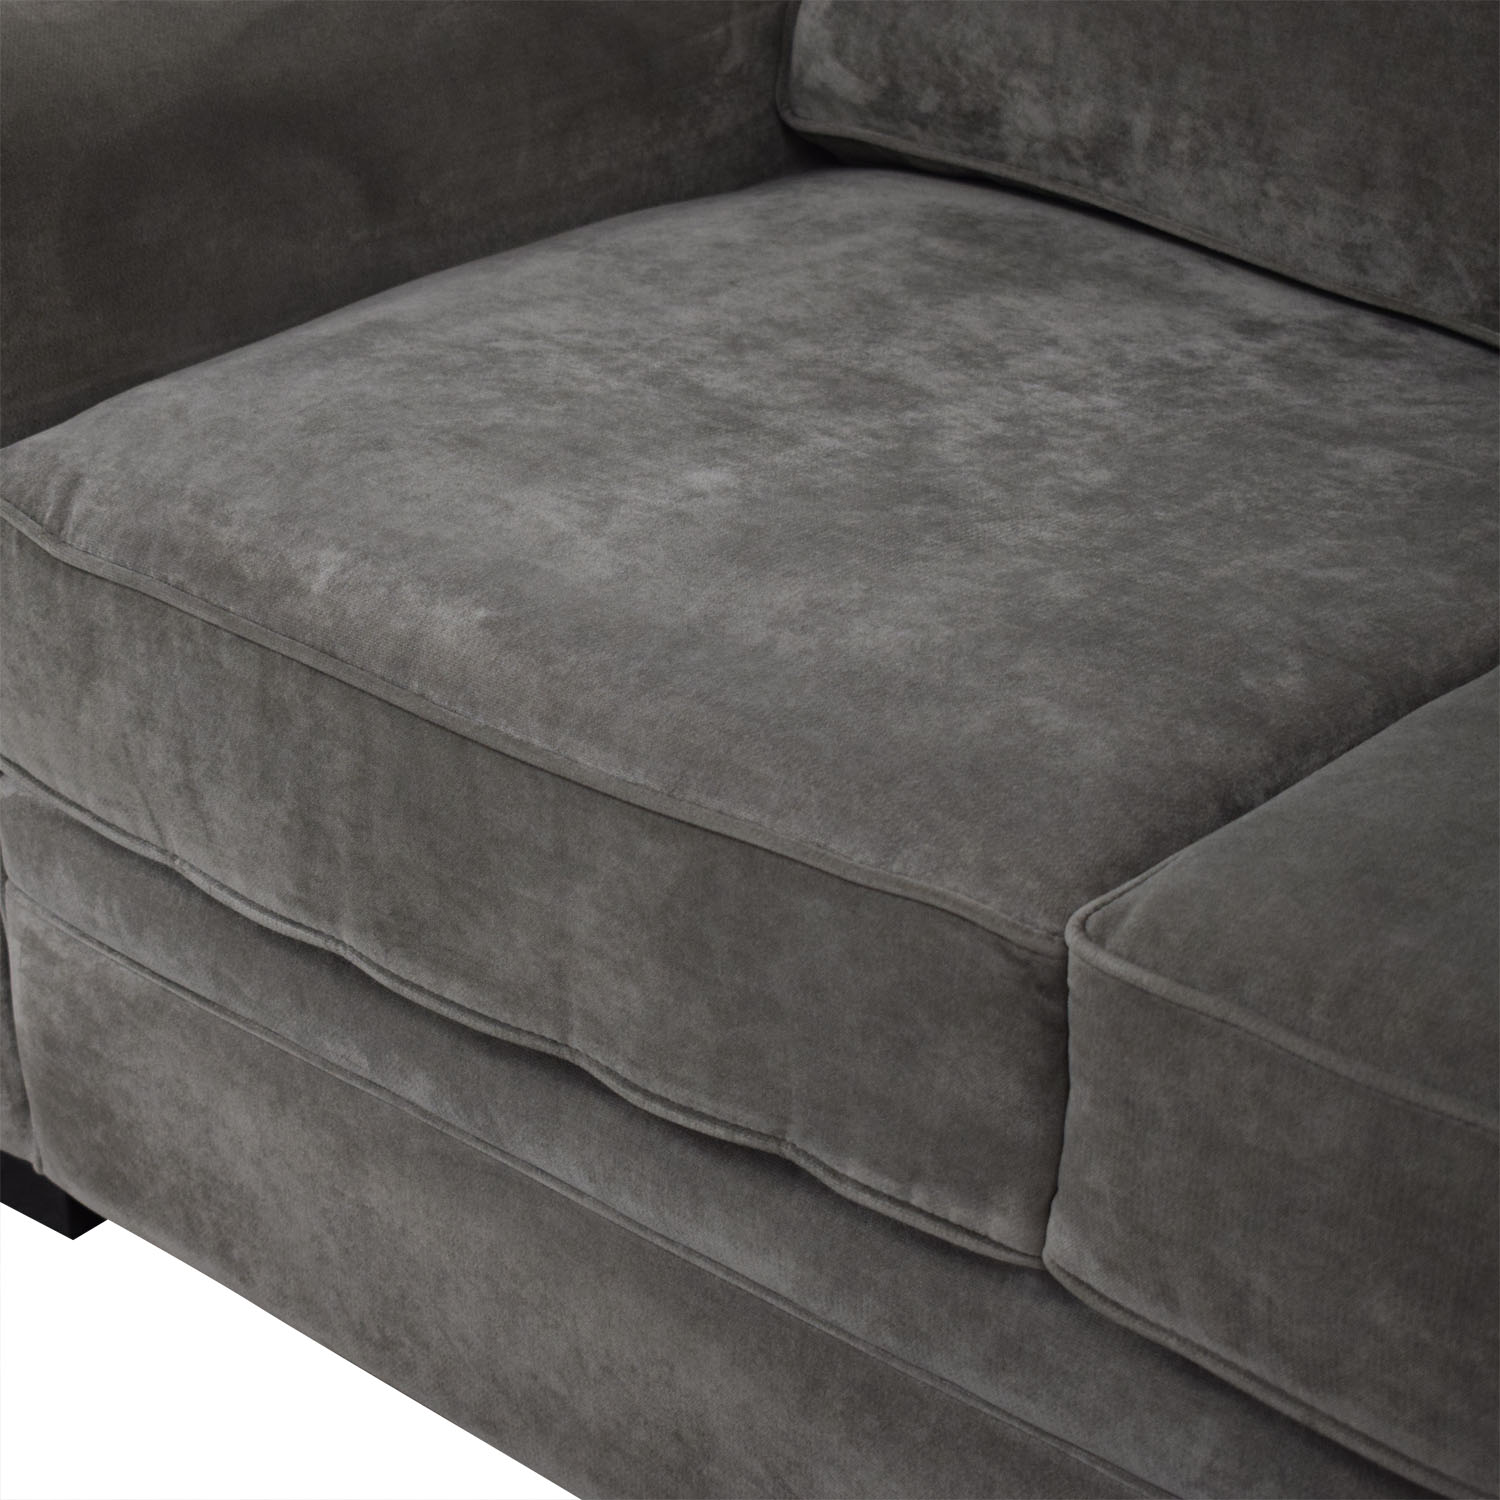 Raymour & Flanigan Artemis II Sectional Sofa with Chaise / Sofas